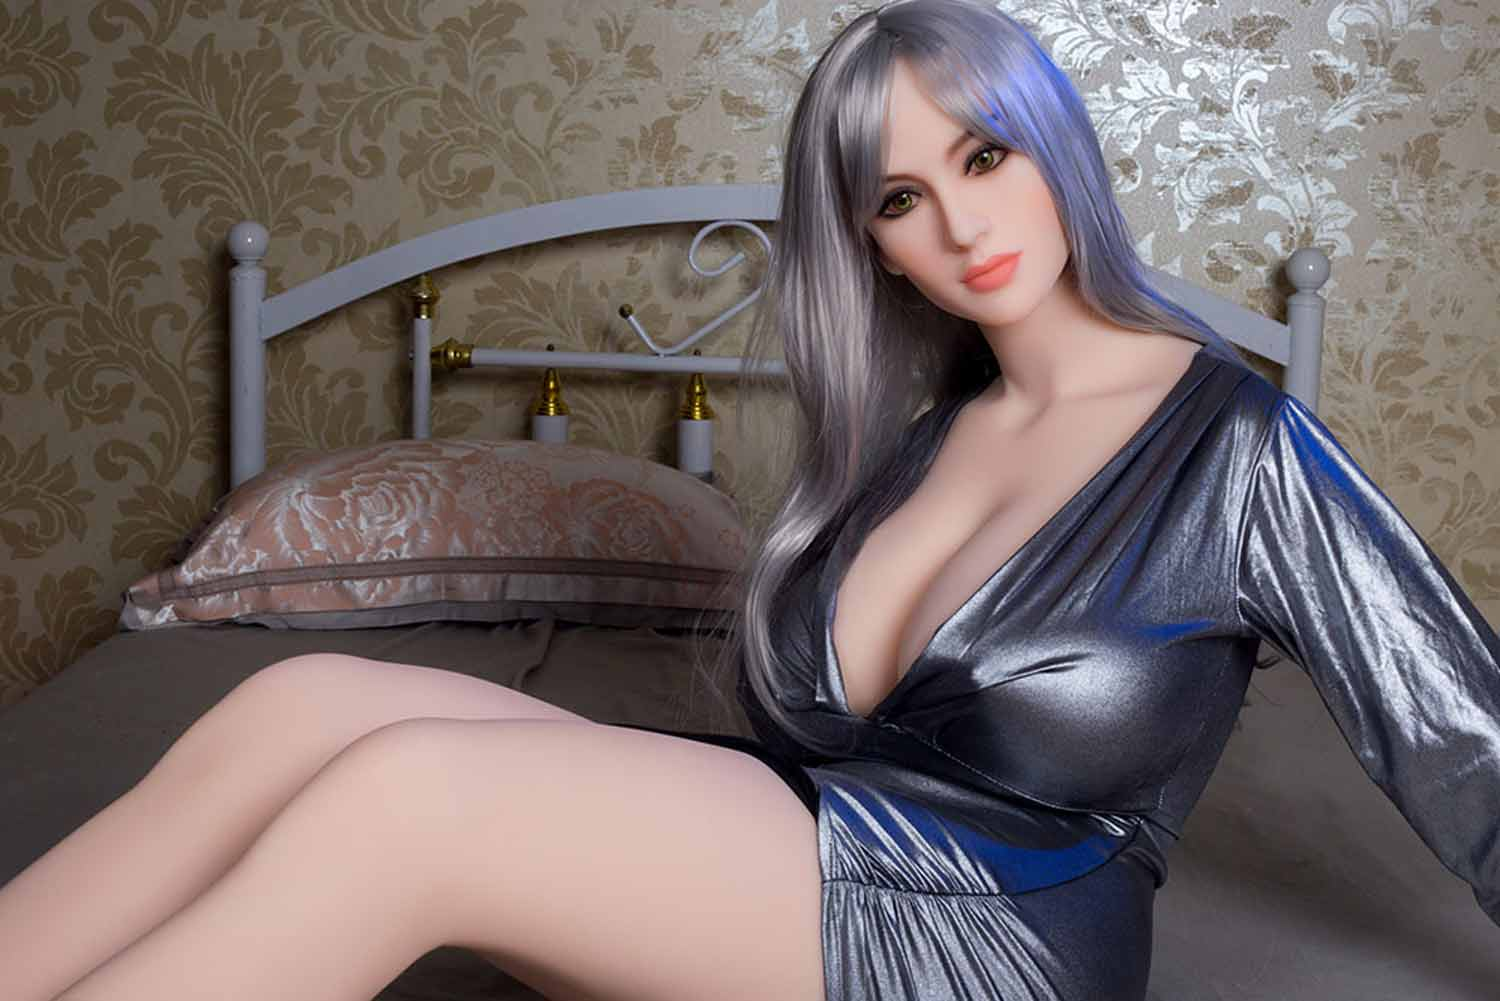 Big breasted sex doll sitting on the bed